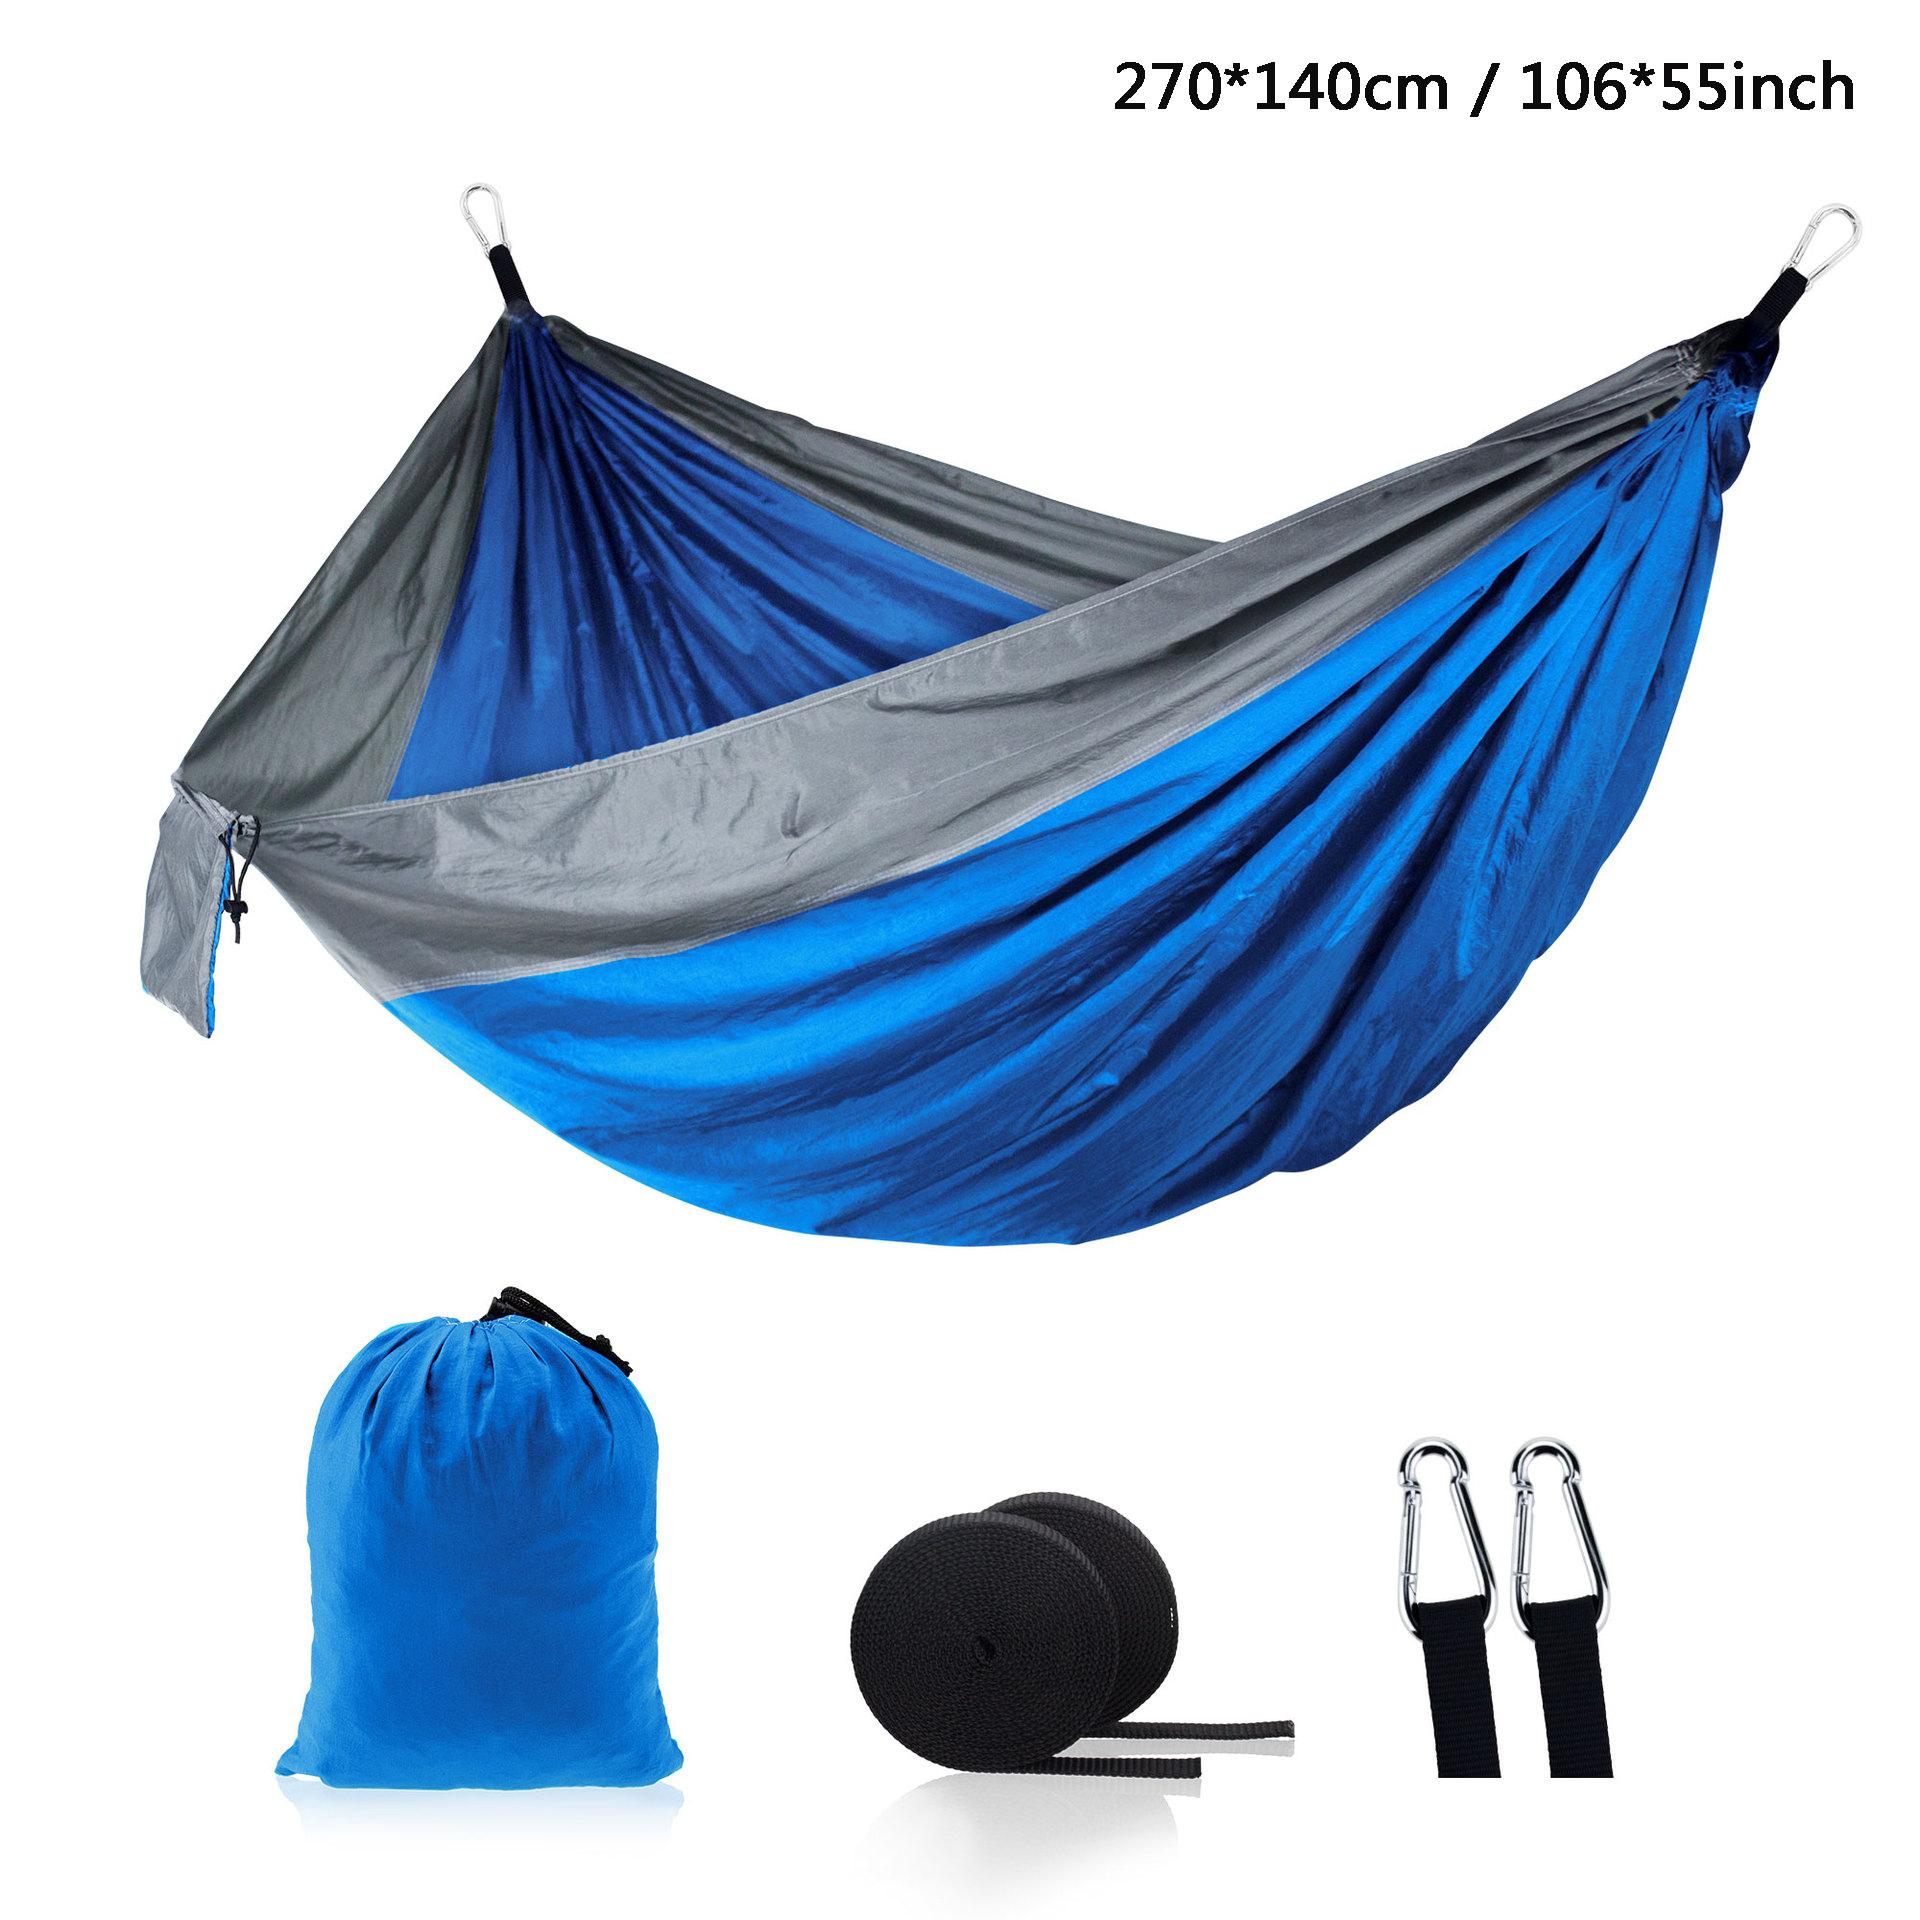 Outdoor Parachute Cloth Hammock Foldable Field Camping Swing Hanging Bed Nylon Hammocks With Ropes Carabiners 12 Color DH1338